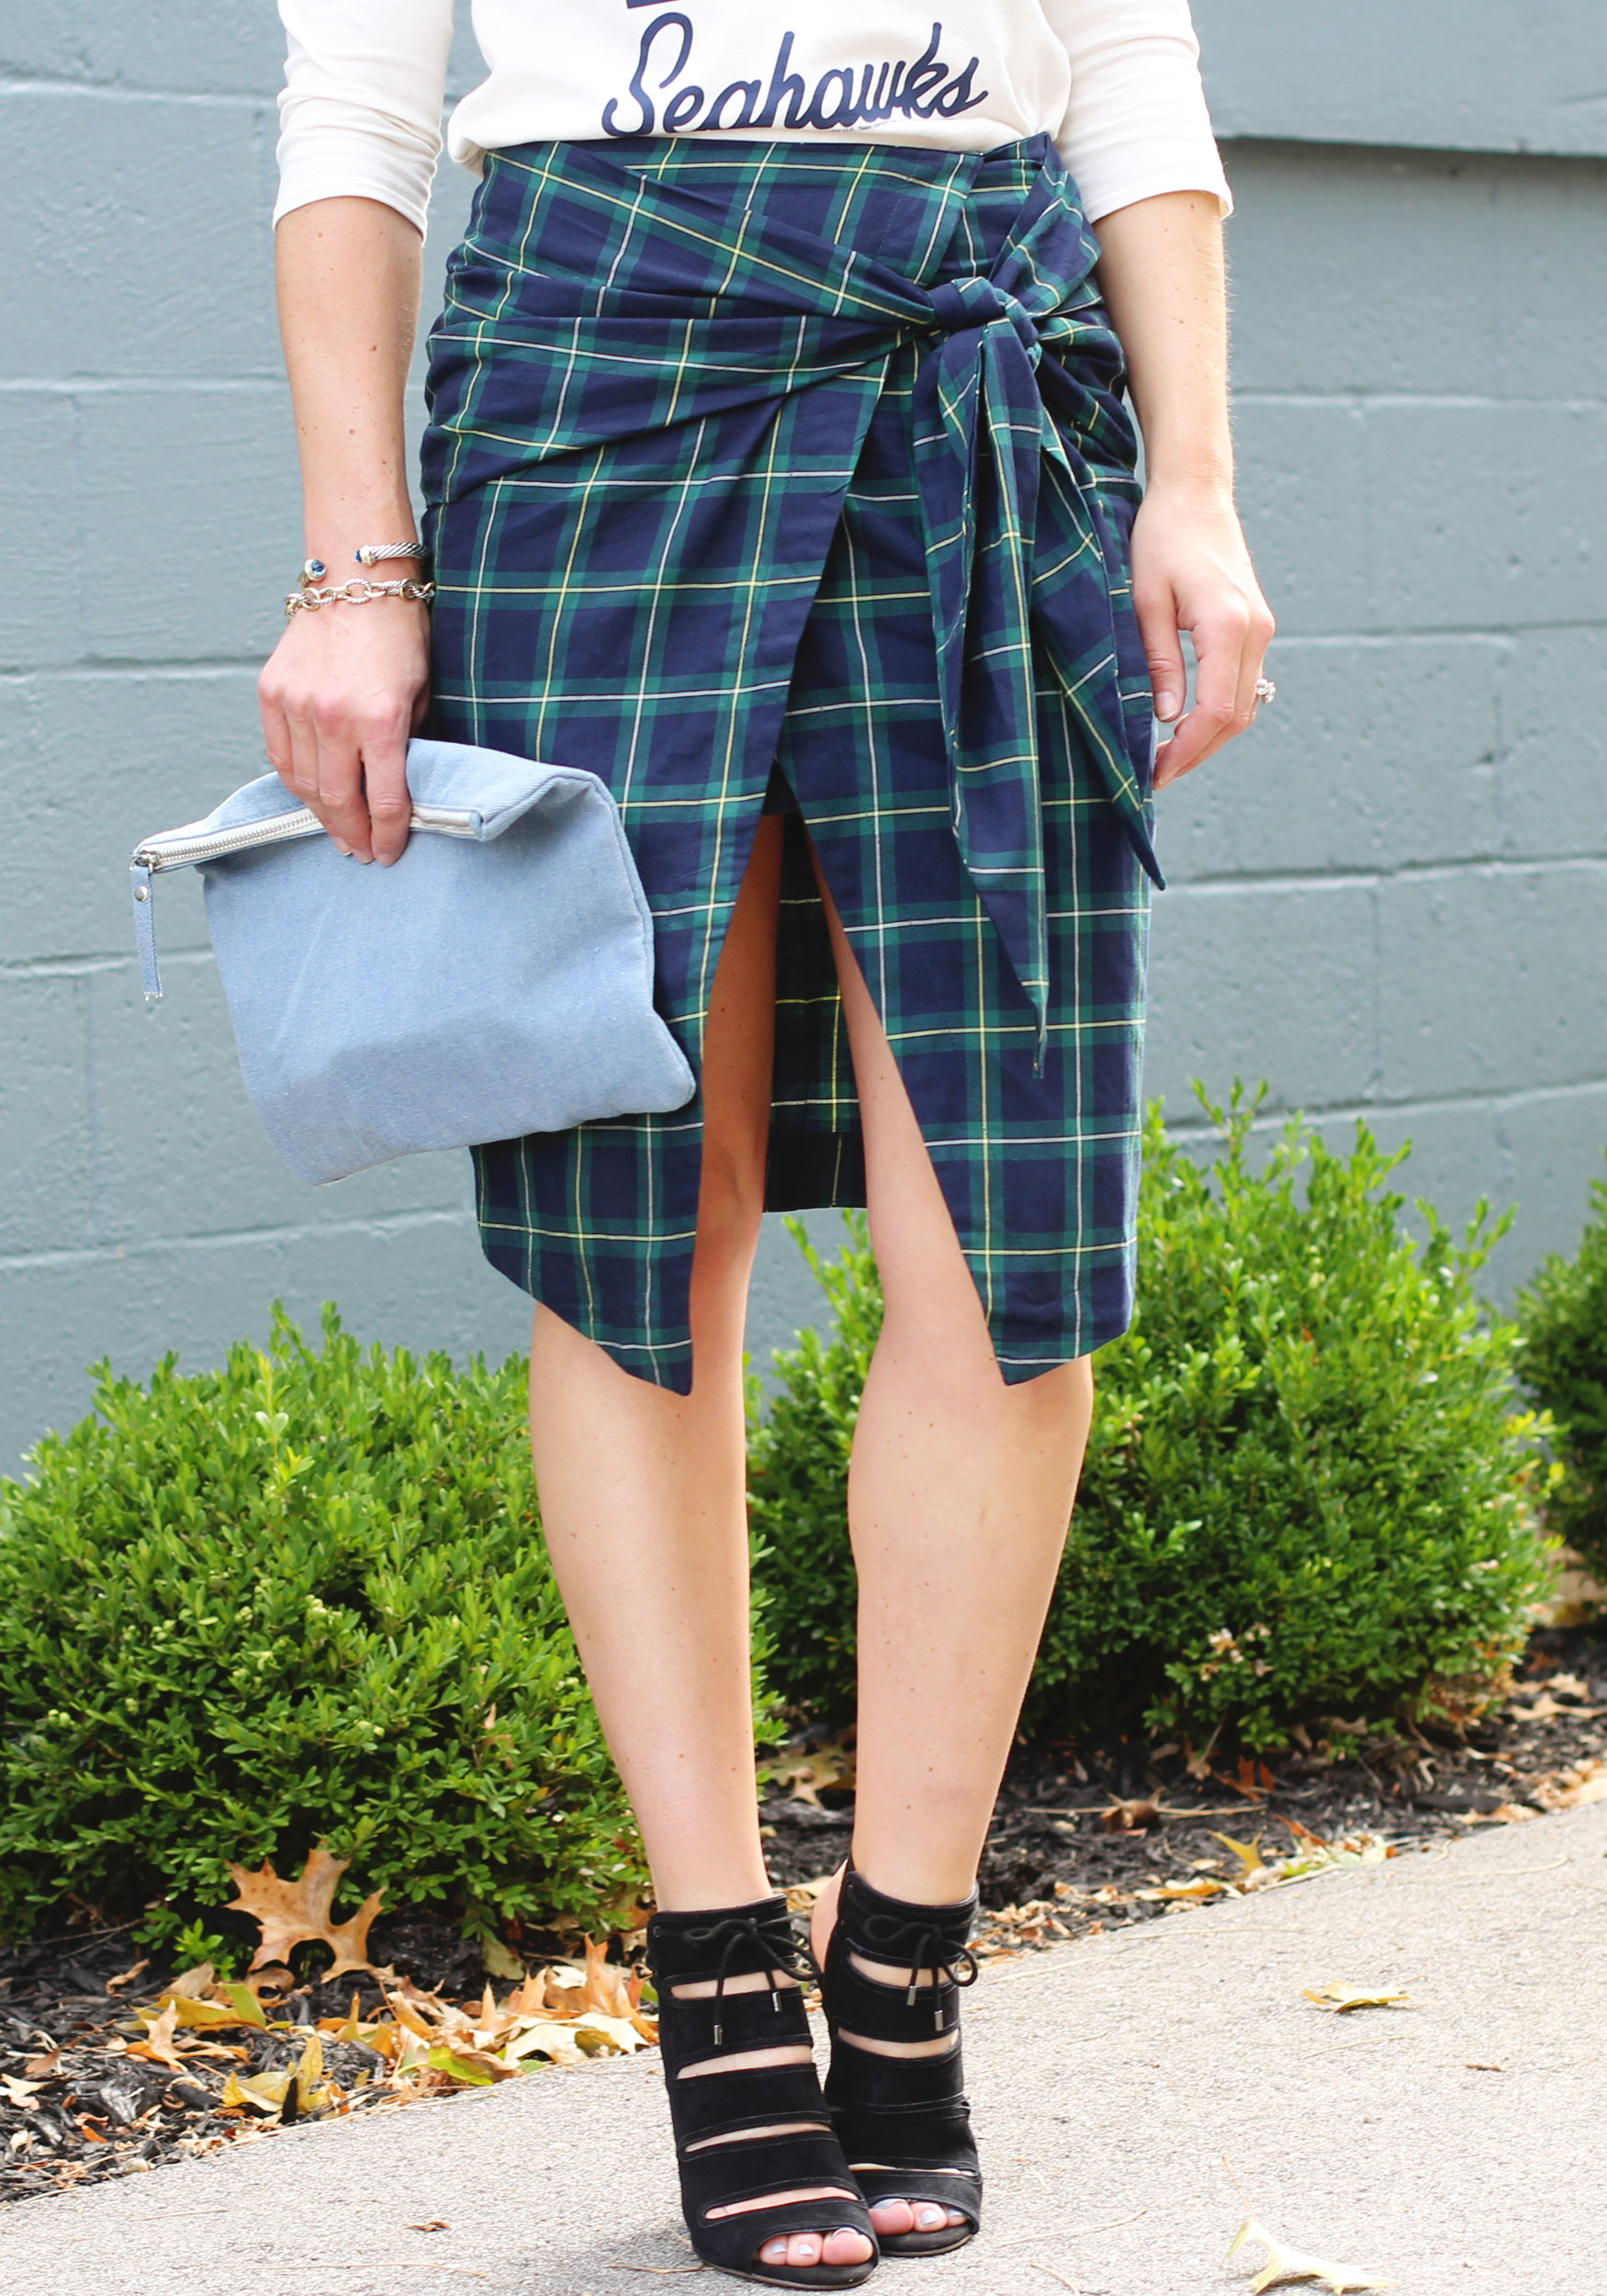 Fall Fashion, JOA Tie Front Skirt, Plaid Skirt, Seattle Seahawks Raglan, Seychelles 'Play Along' Pumps, Forever 21 Unstructured Denim Clutch